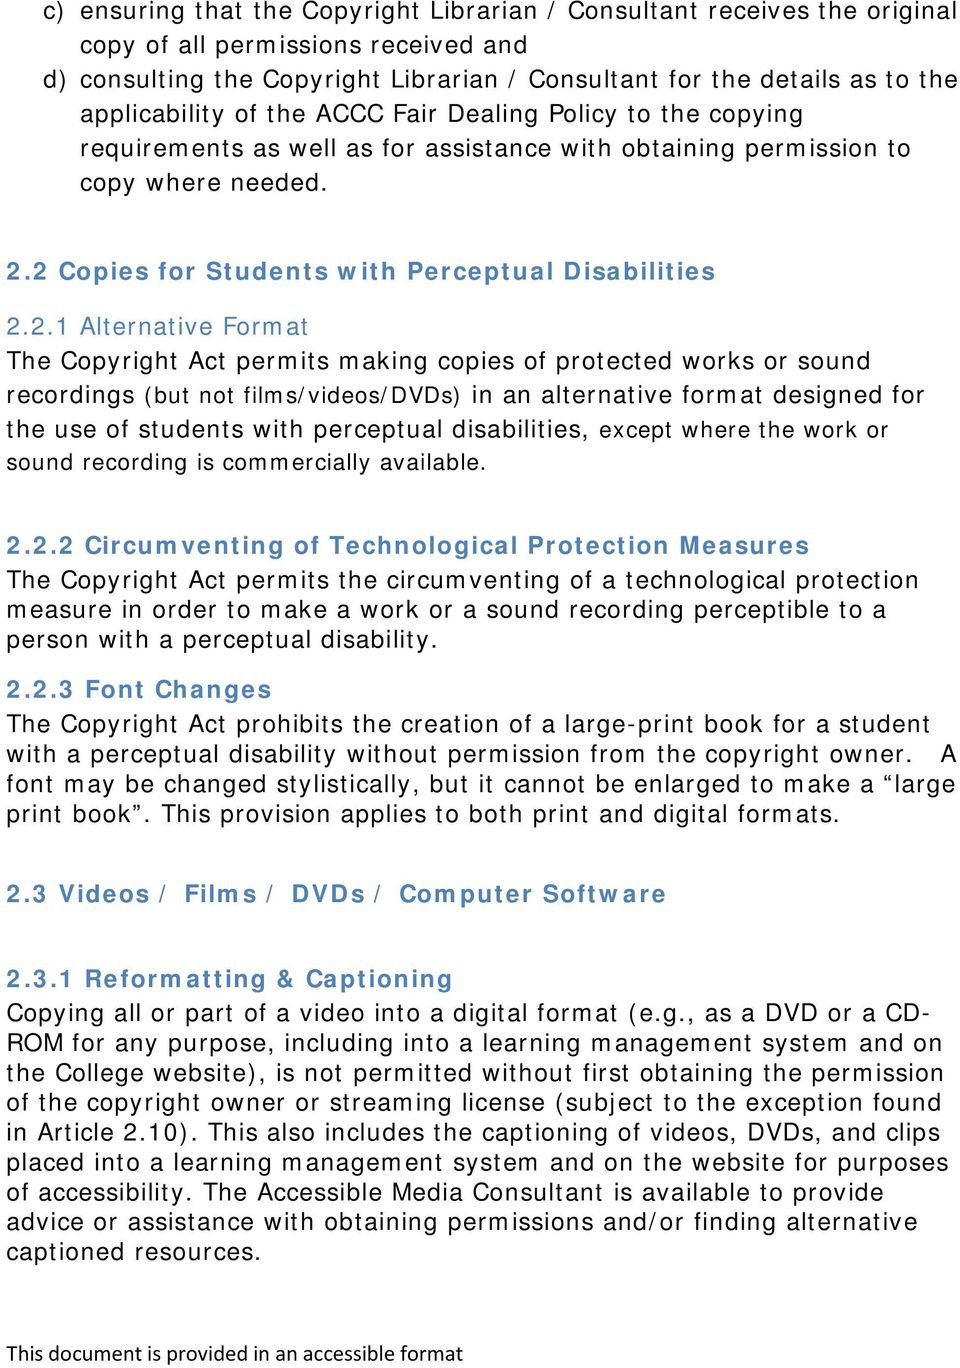 2 Copies for Students with Perceptual Disabilities 2.2.1 Alternative Format The Copyright Act permits making copies of protected works or sound recordings (but not films/videos/dvds) in an